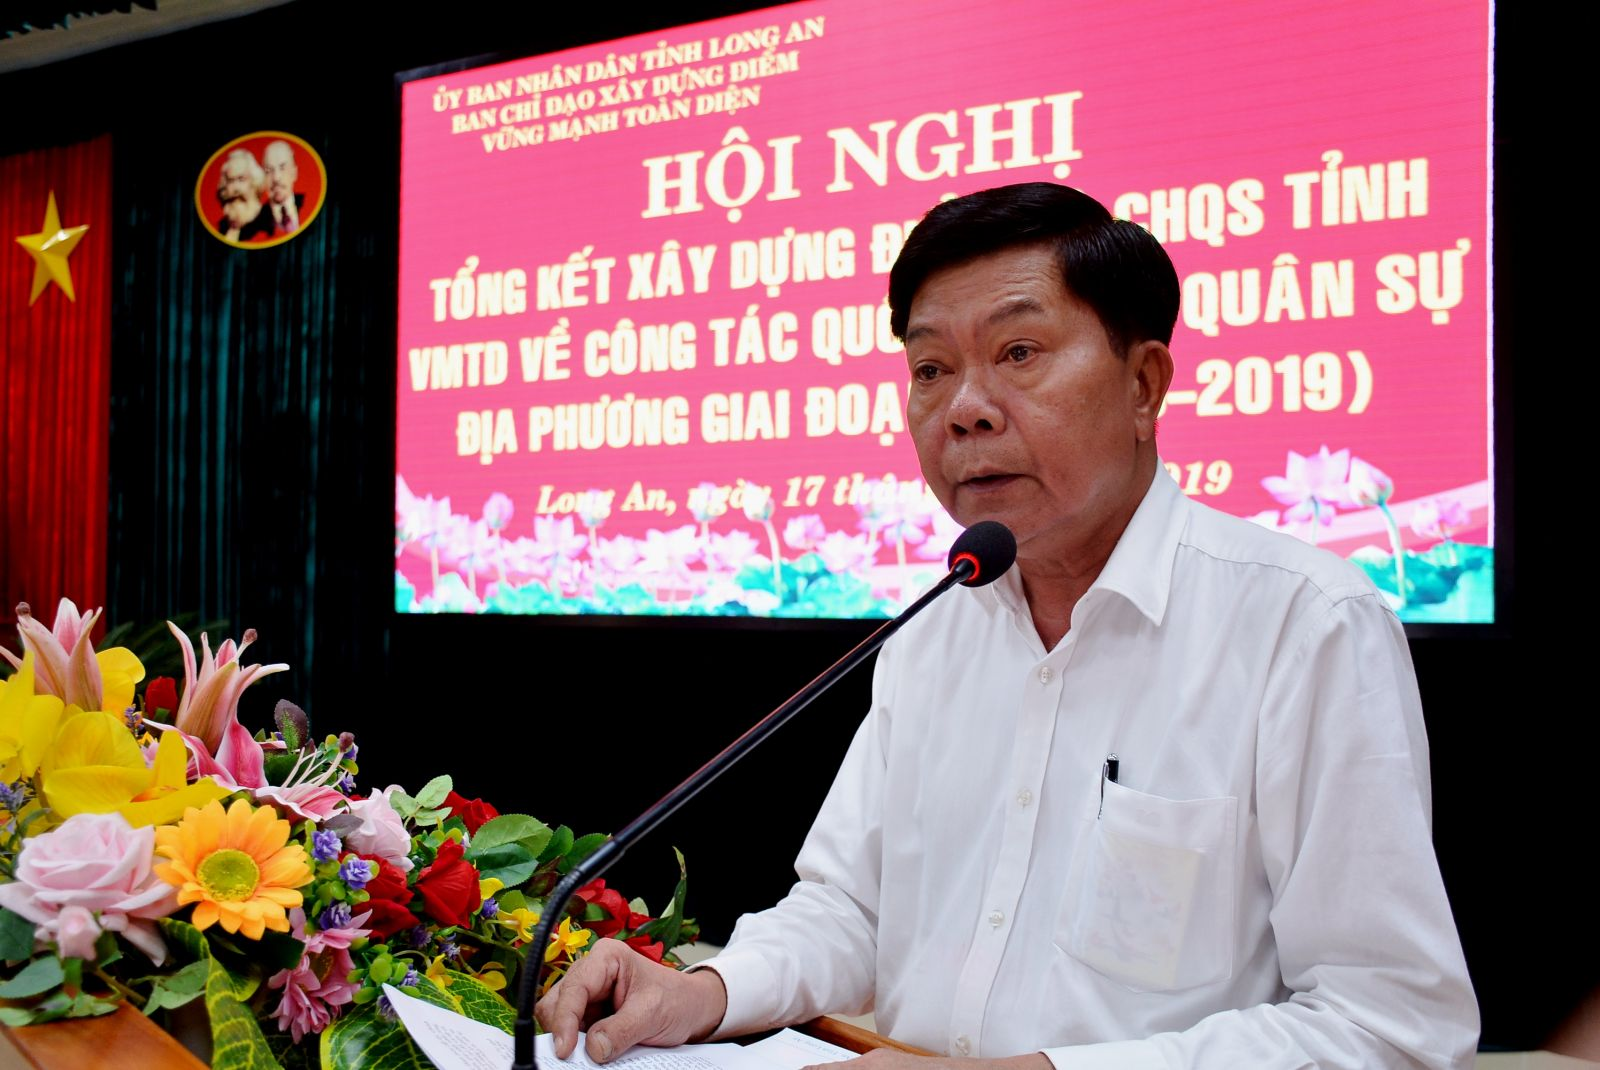 Chairman of the Provincial People's Committee - Tran Van Can speaks at the conference